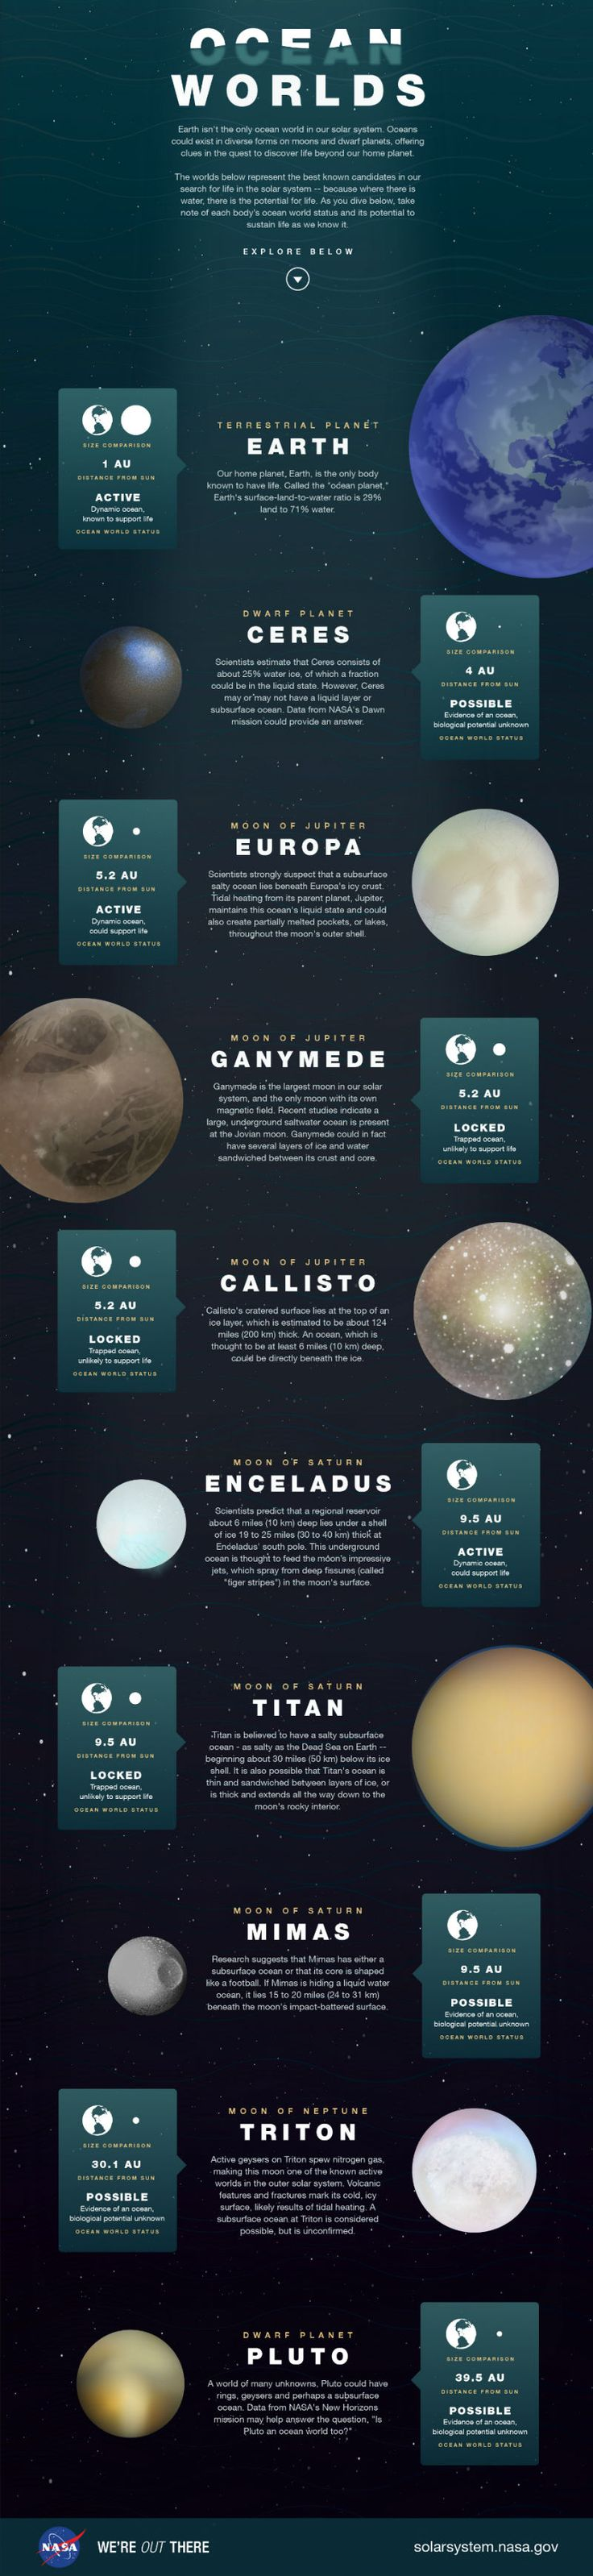 Here's how wet our Solar System is: 9 extraterrestrial oceans in one handy infographic - ScienceAlert